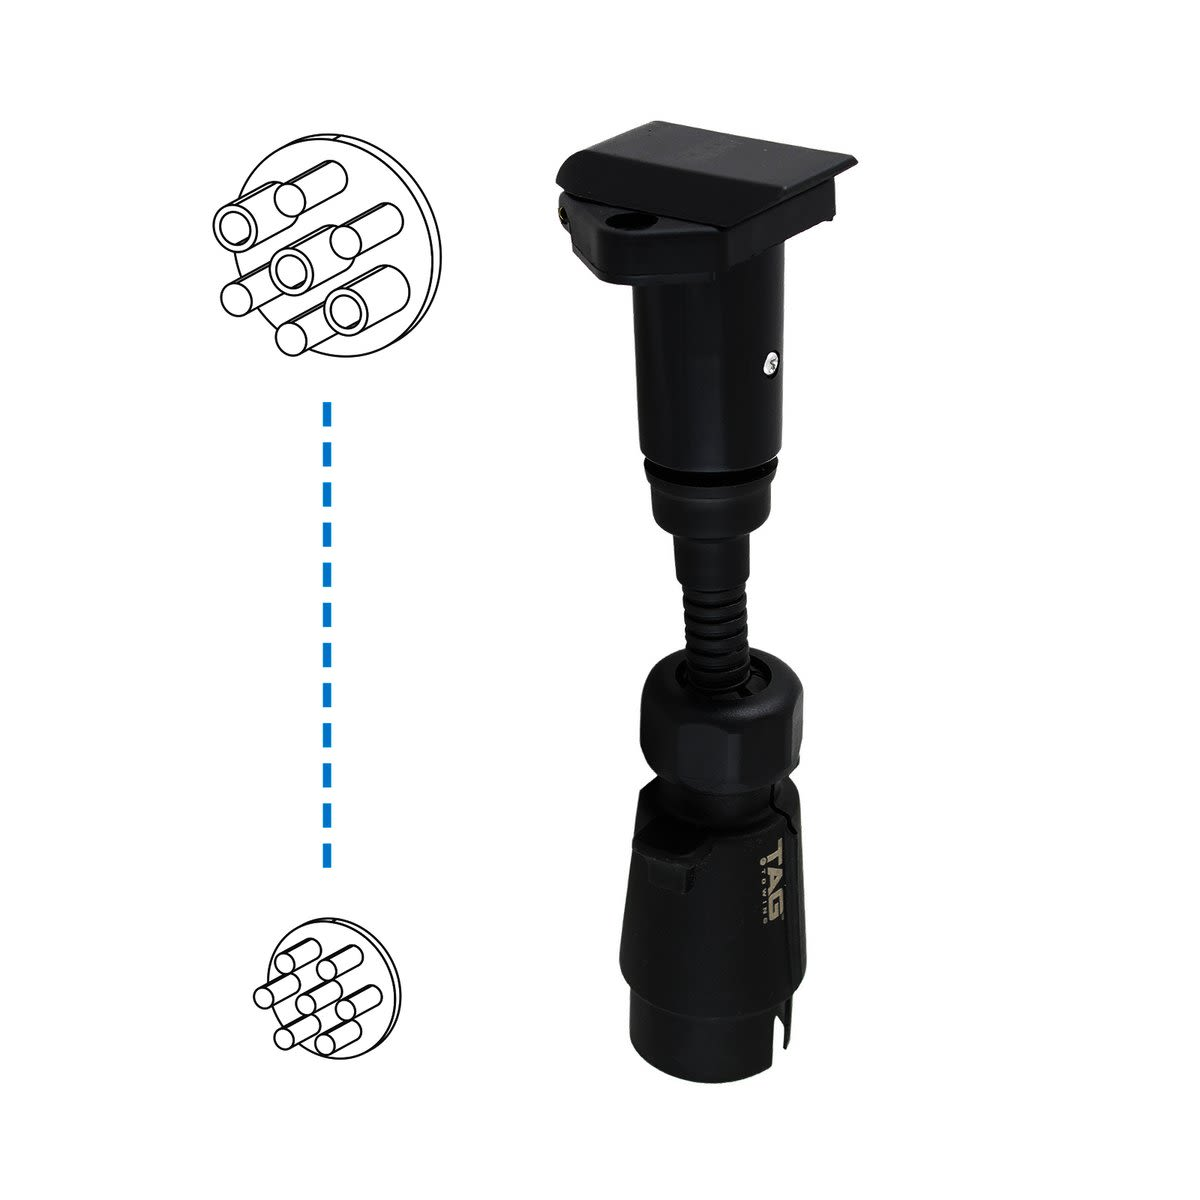 TAG Pulse Trailer Adapter - 7 Pin Large Round Plug to 7 Pin Small Round Socket